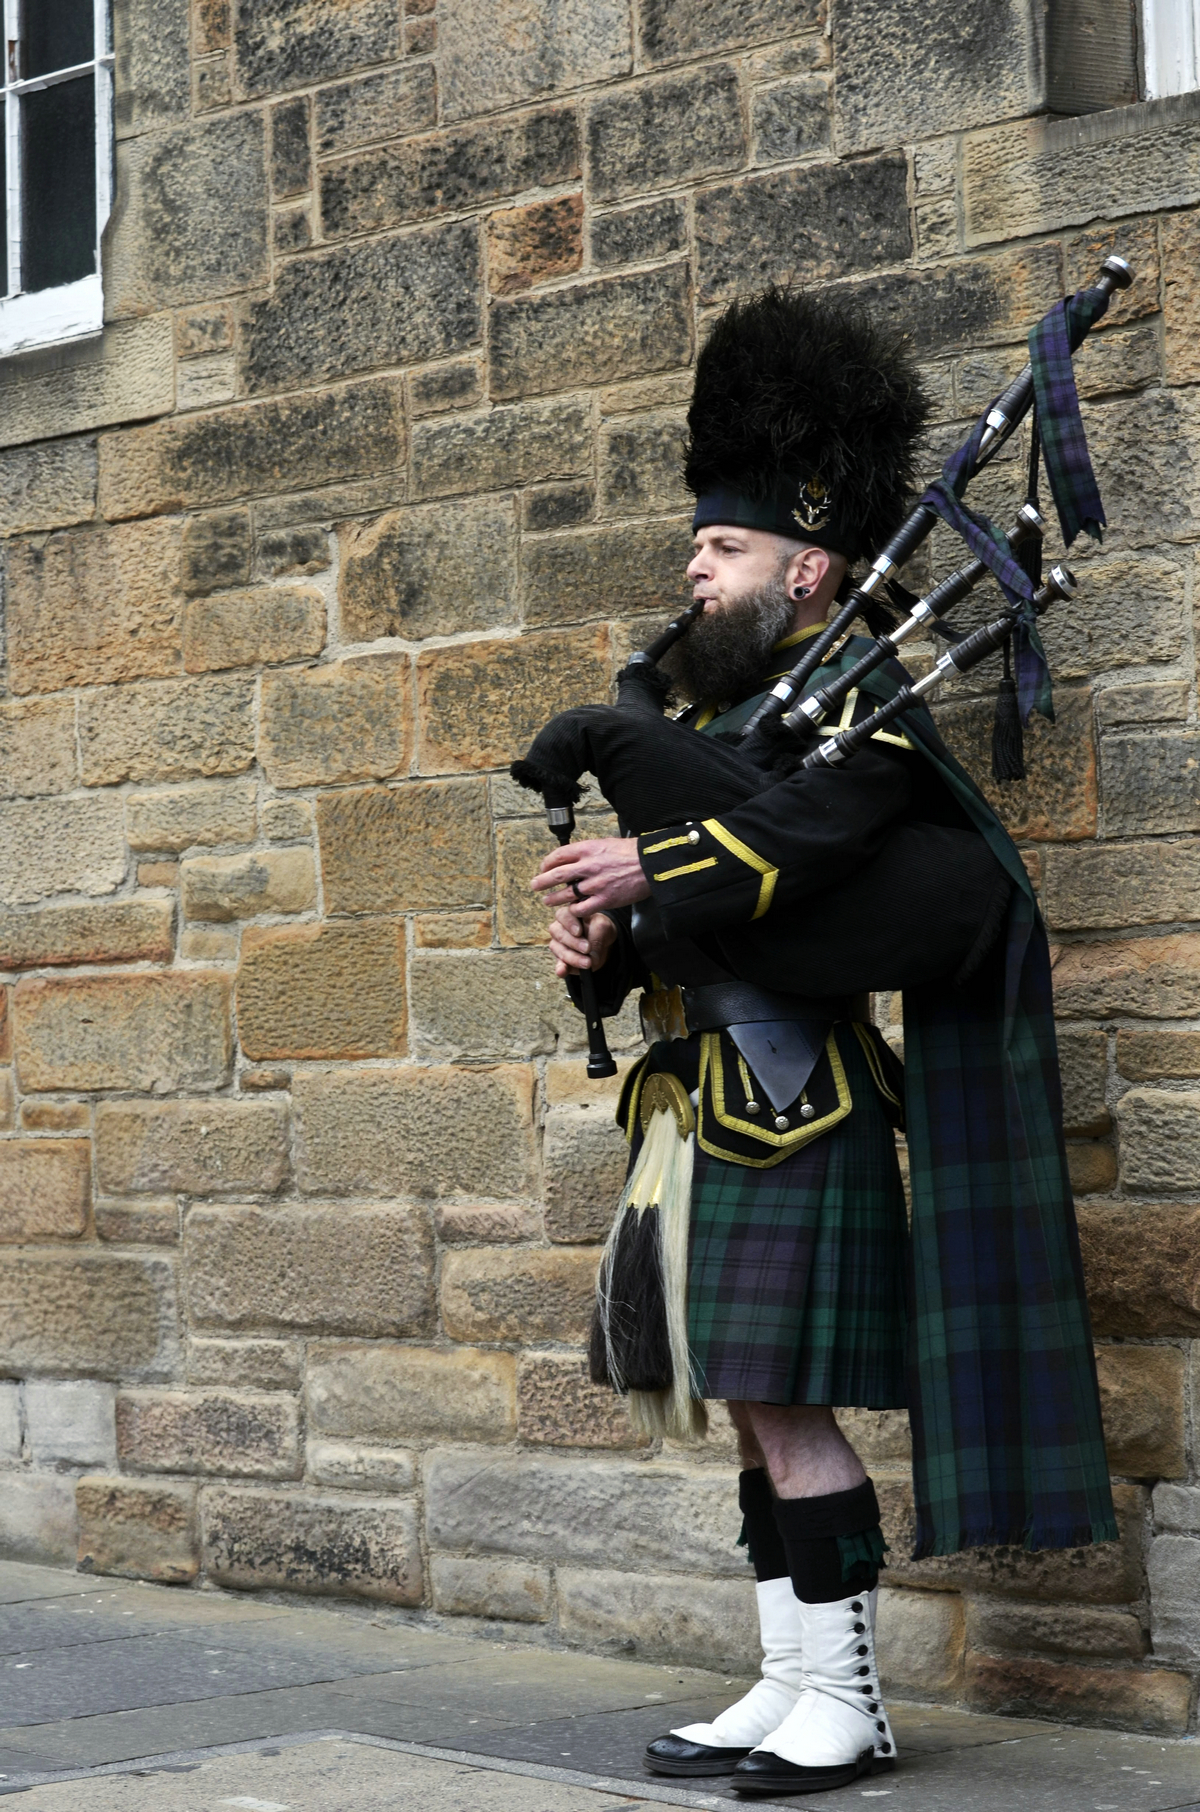 Bagpipe, an iconic symbol of Scotland.